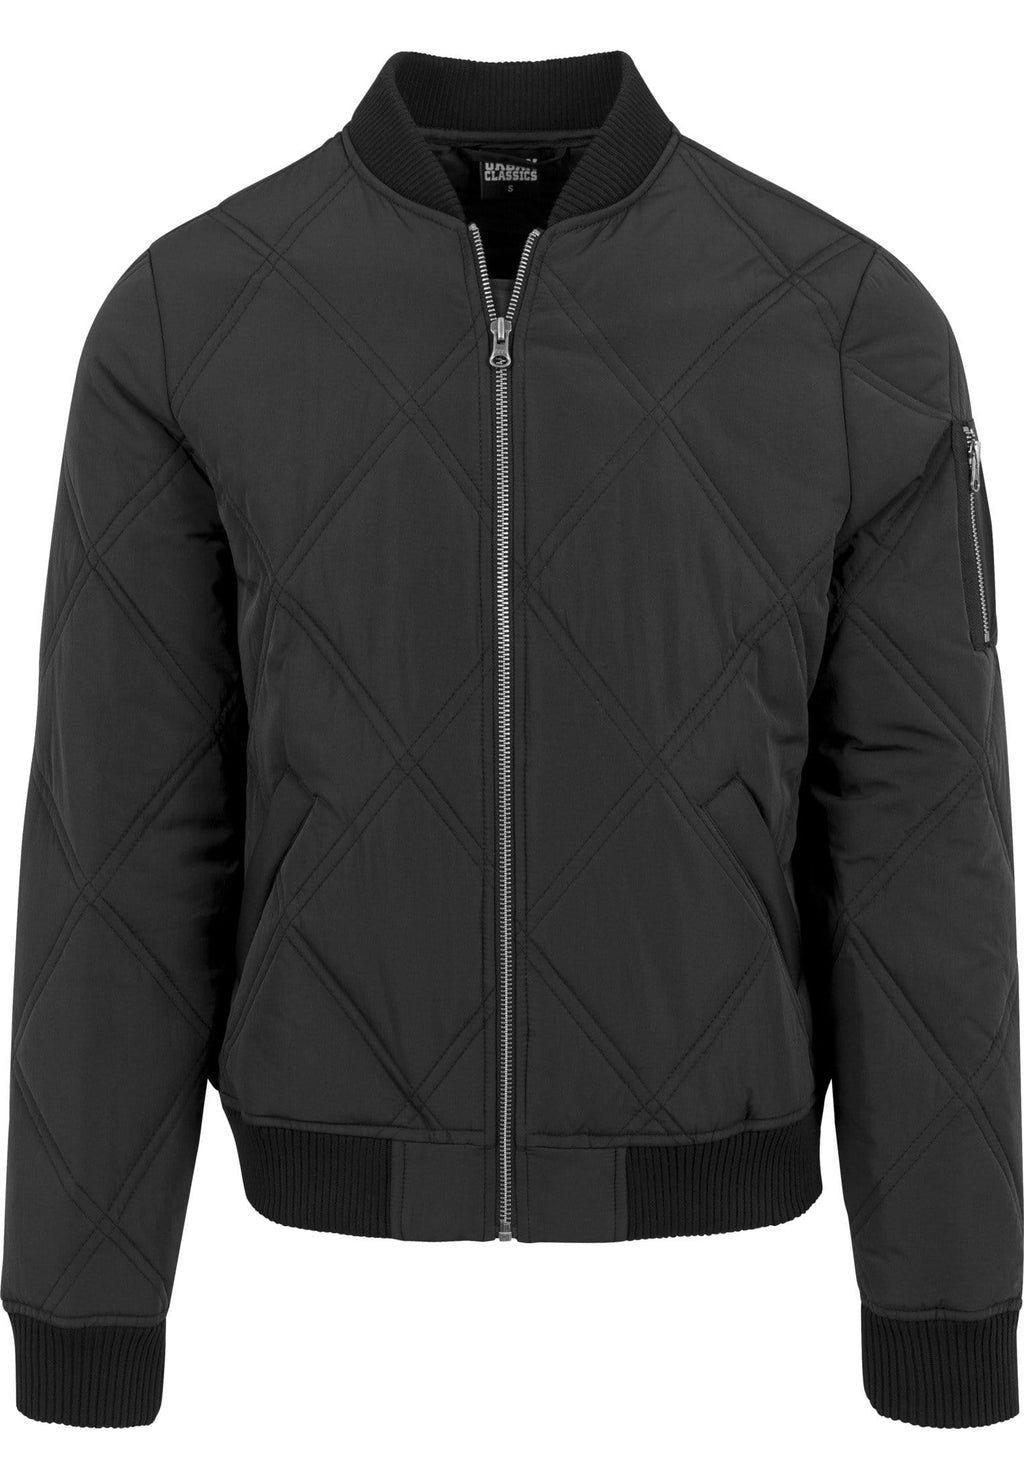 Big Diamond Quilt Bomber Jacket - Black